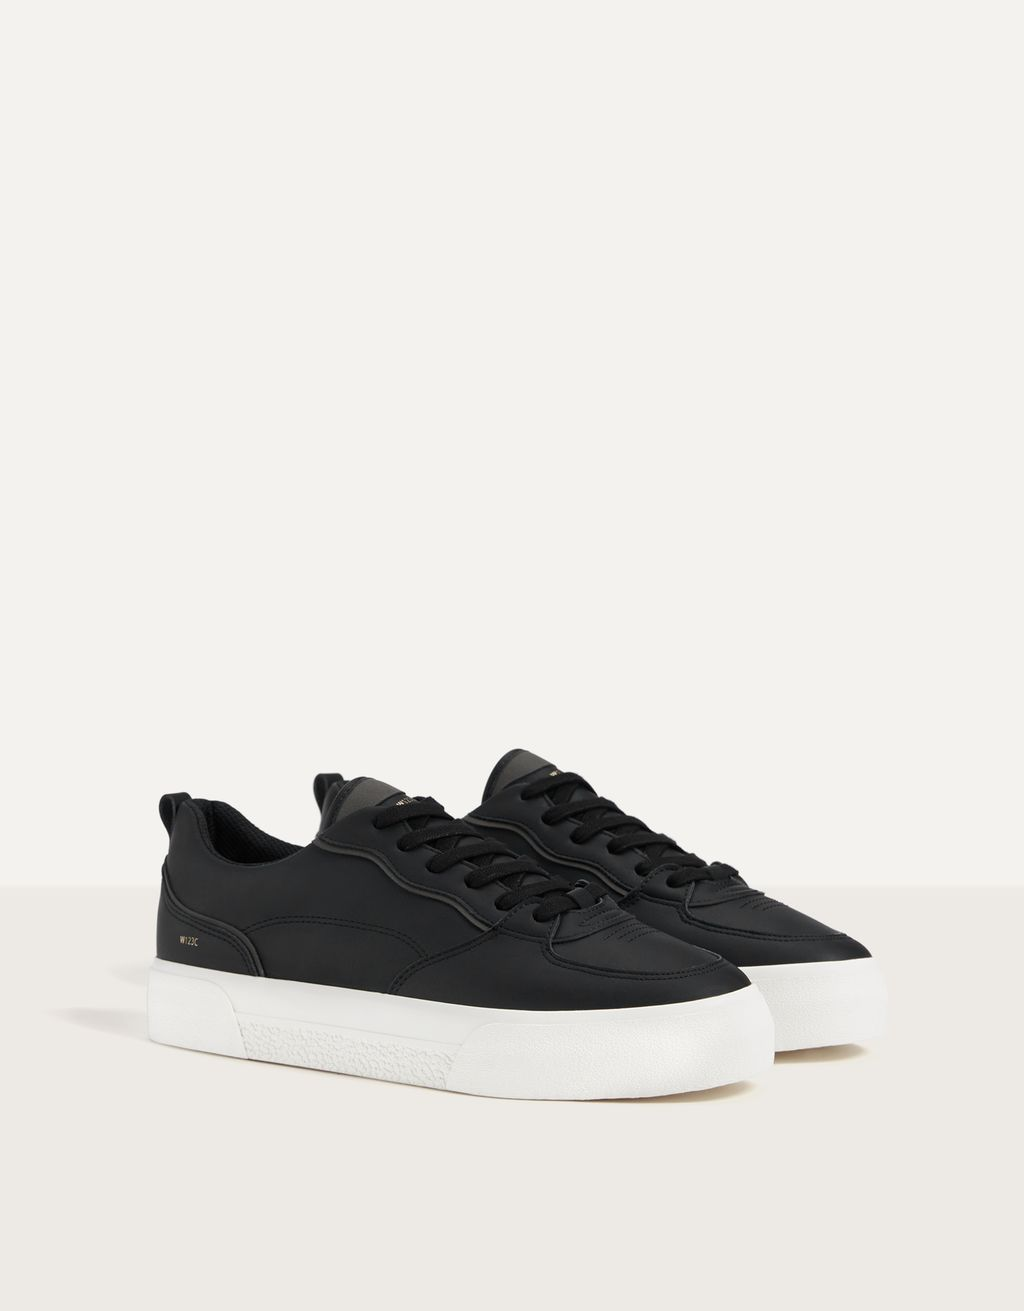 Men's topstitched trainers